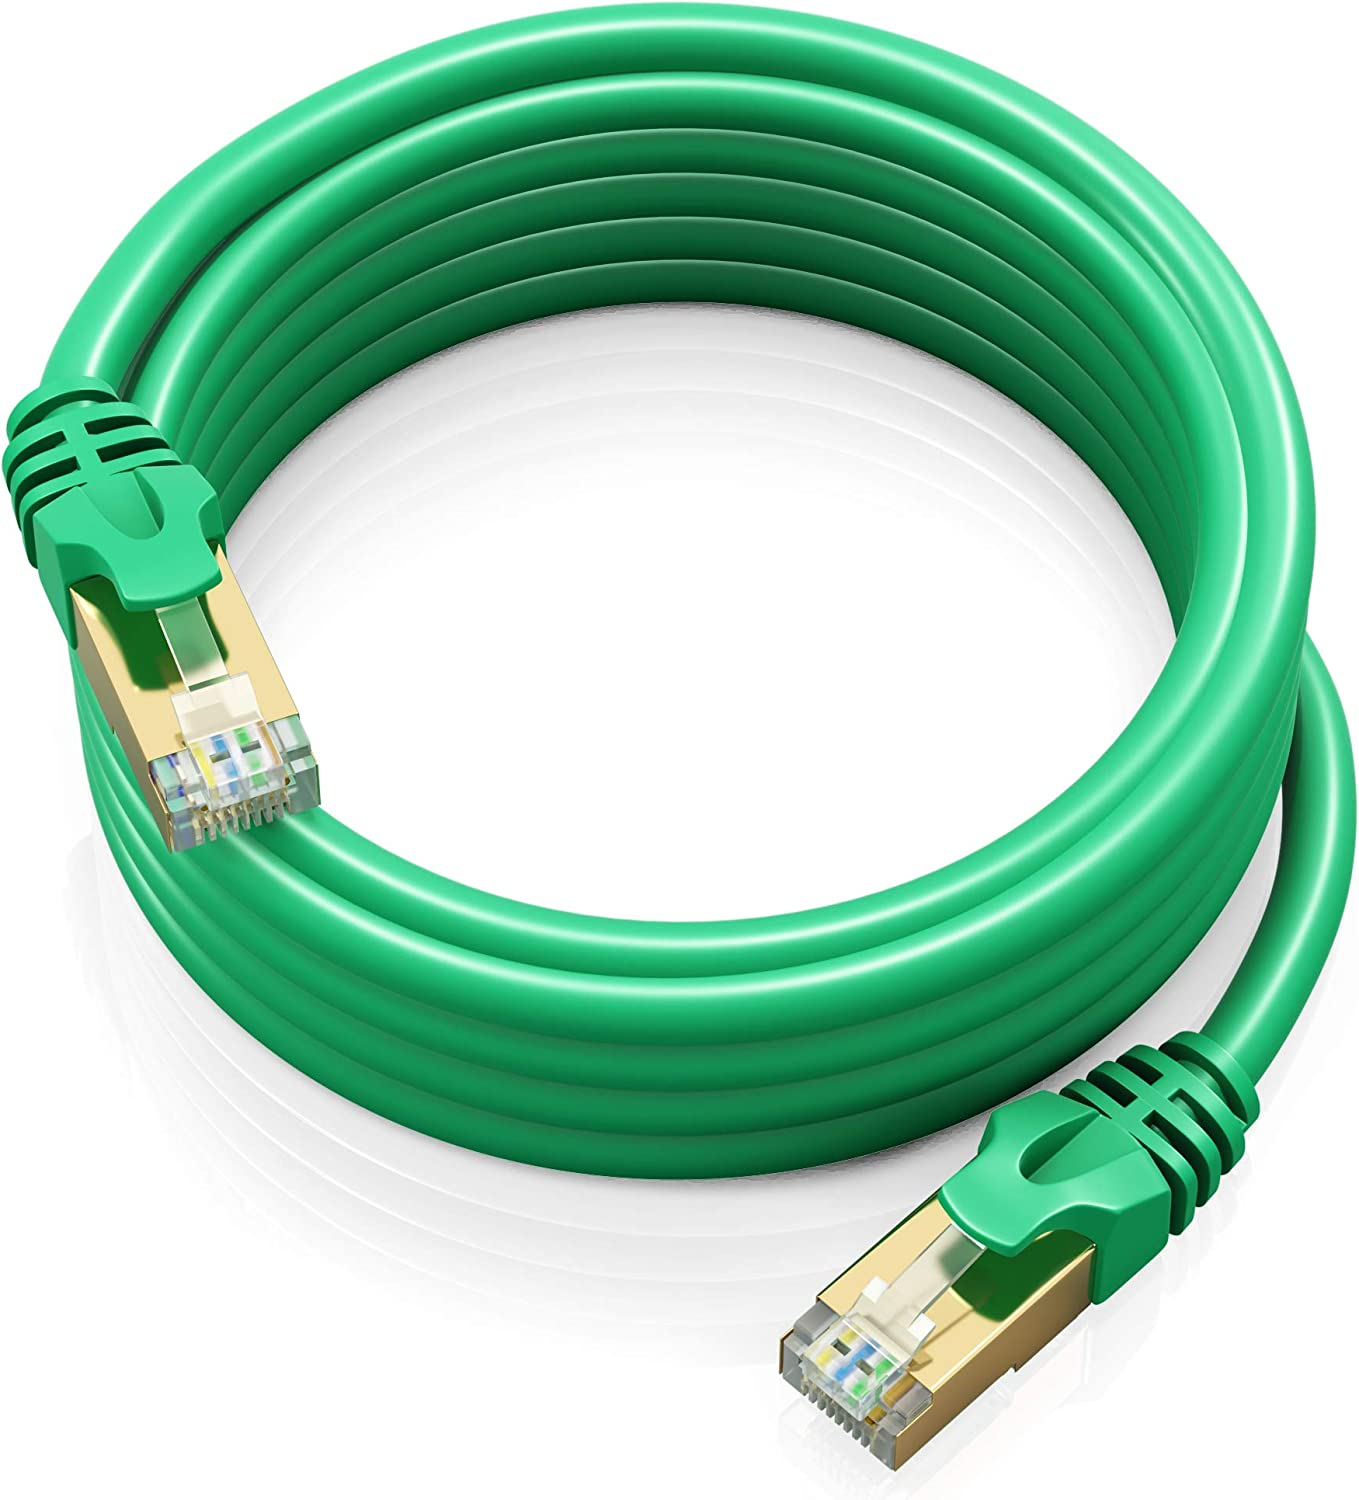 1.5FT Multi Color 600Mhz High Speed Double Shielded UTP 5 Pack 10Gbps Maximm Cat7 Ethernet Cable Patch and Network Cable